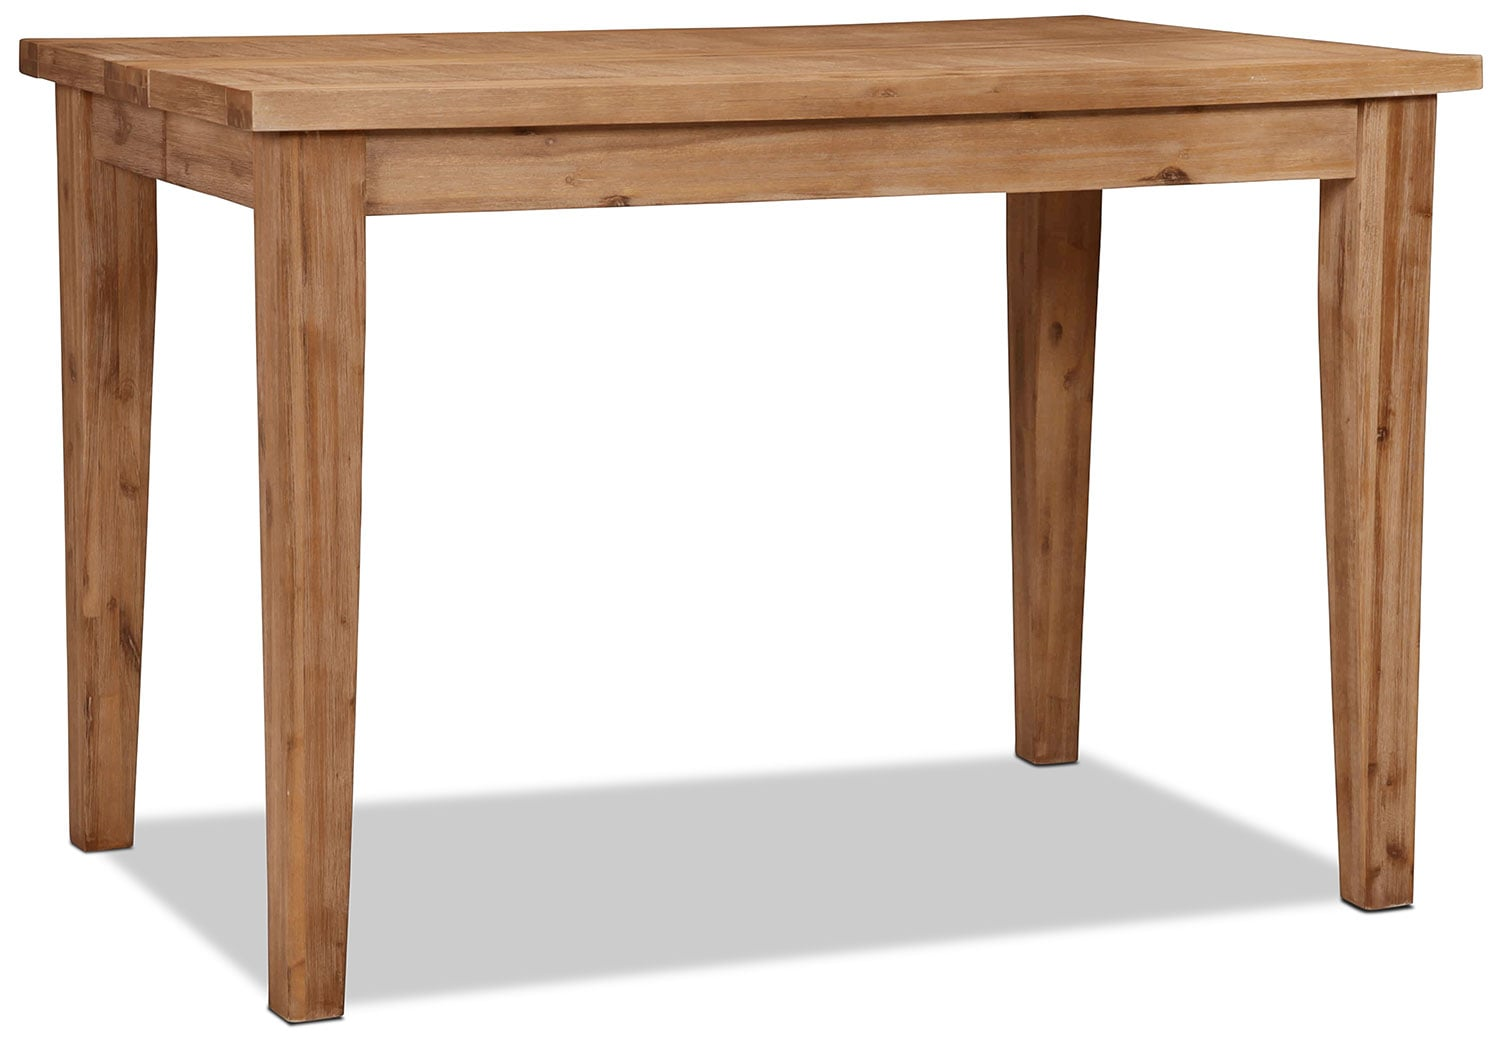 Annabella Counter-Height Table - Natural